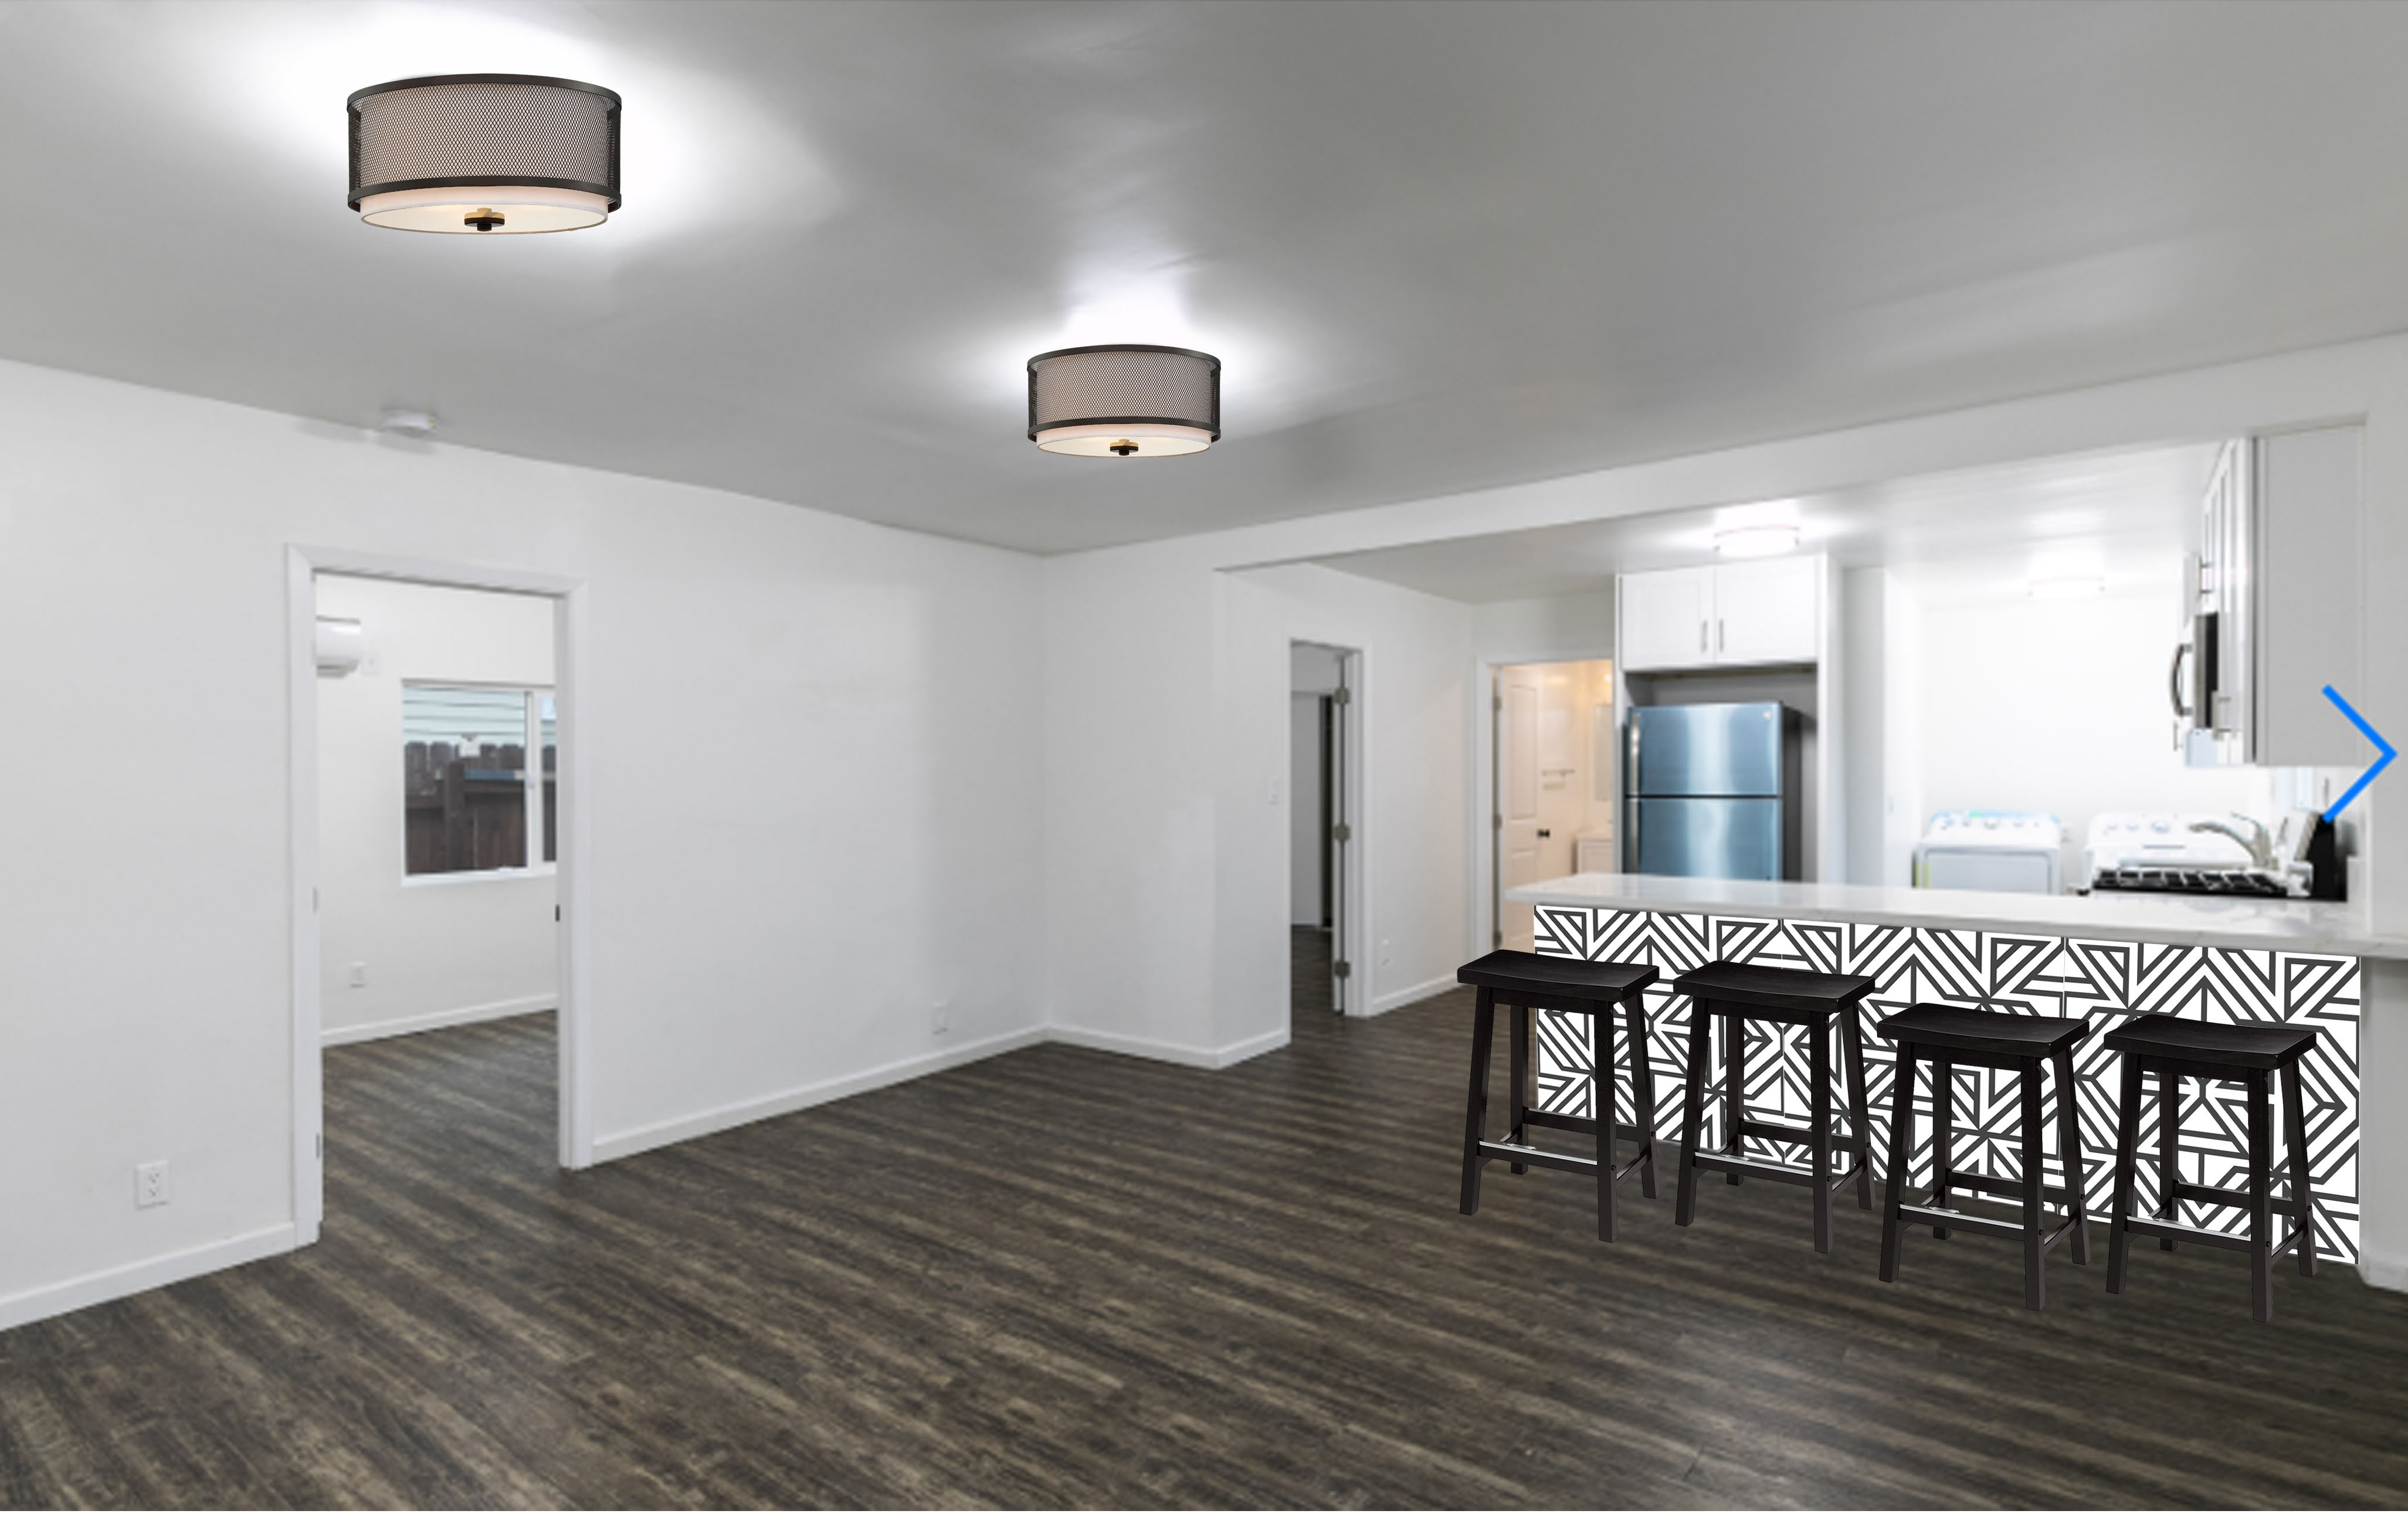 Newly Renovated 2 Bed/ 2 bath In Cypress Park   AC Included   W/D In Unit!   Parking Included + Private Patio